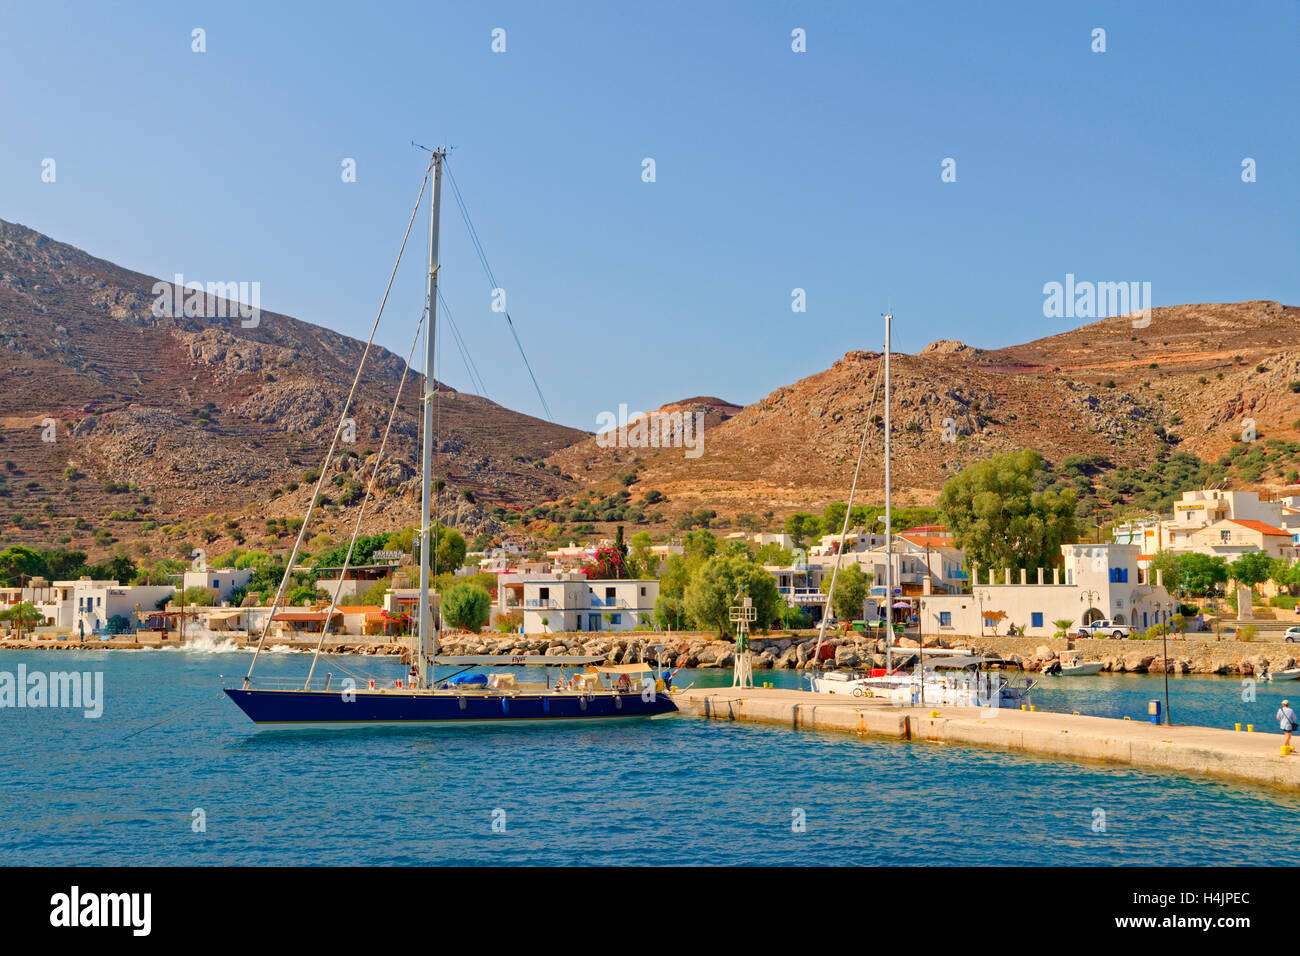 Tilos town quay on the Greek island of Tilos situated between Rhodes and Kos in the Dodecanese Island group, Greece. - Stock Image